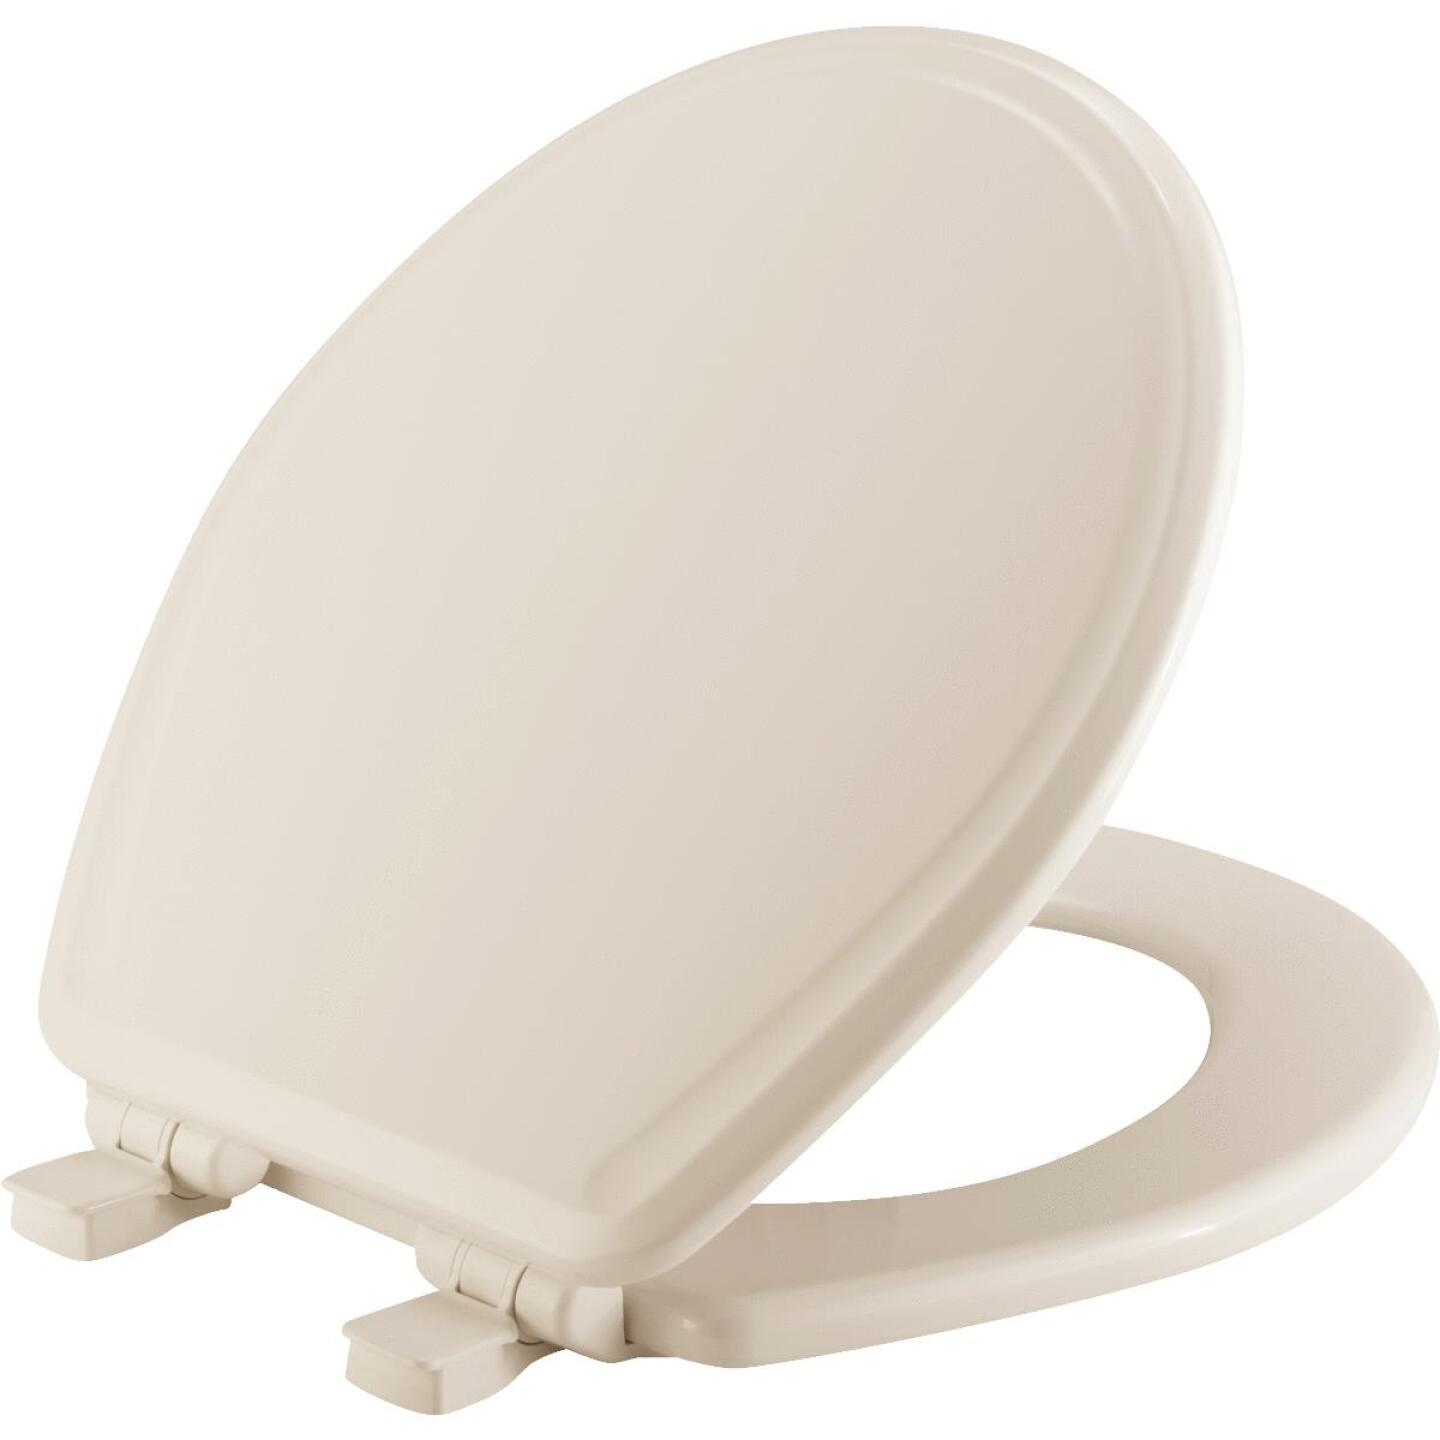 Mayfair Round Closed Front Slow Close Biscuit Toilet Seat Image 1